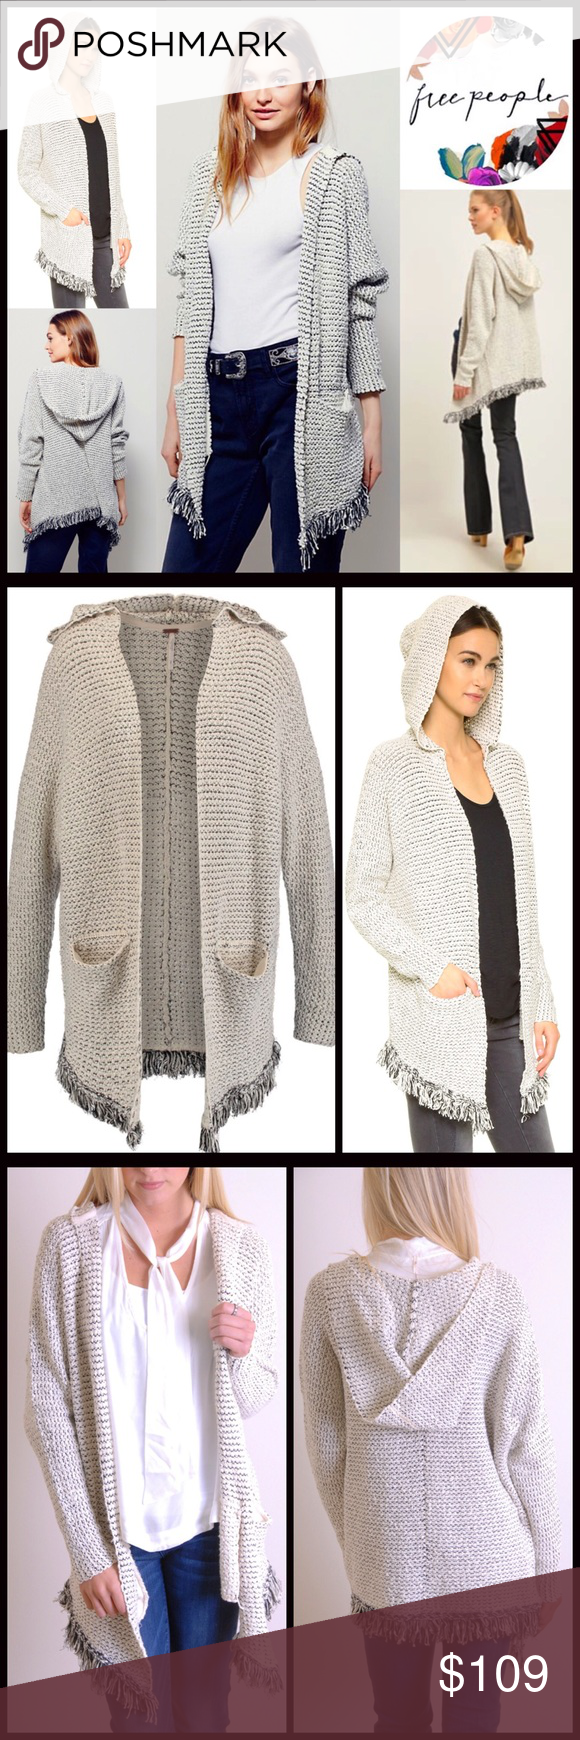 "FREE PEOPLE Long Hooded Cardigan 💟NEW WITH TAGS💟 RETAIL PRICE: $128  FREE PEOPLE Long Cardigan Coat Fringe Hem  * Attached hood  * Open front; Super soft & stretch-to-fit fabric  * Long sleeves w/banded cuffs  * 2 front welt pockets  * Frayed tassel fringe trim   * Approx 28-36"" long, hi lo hem   Fabric: Cotton, ramie, nylon, 1% spandex Color: Cream combo Item#F98900 SEARCH WORDS # slouchy oversized boyfriend loose knit Cardi tassel jacket marled love me tender cape 🚫No Trades🚫 ✅ Offers…"